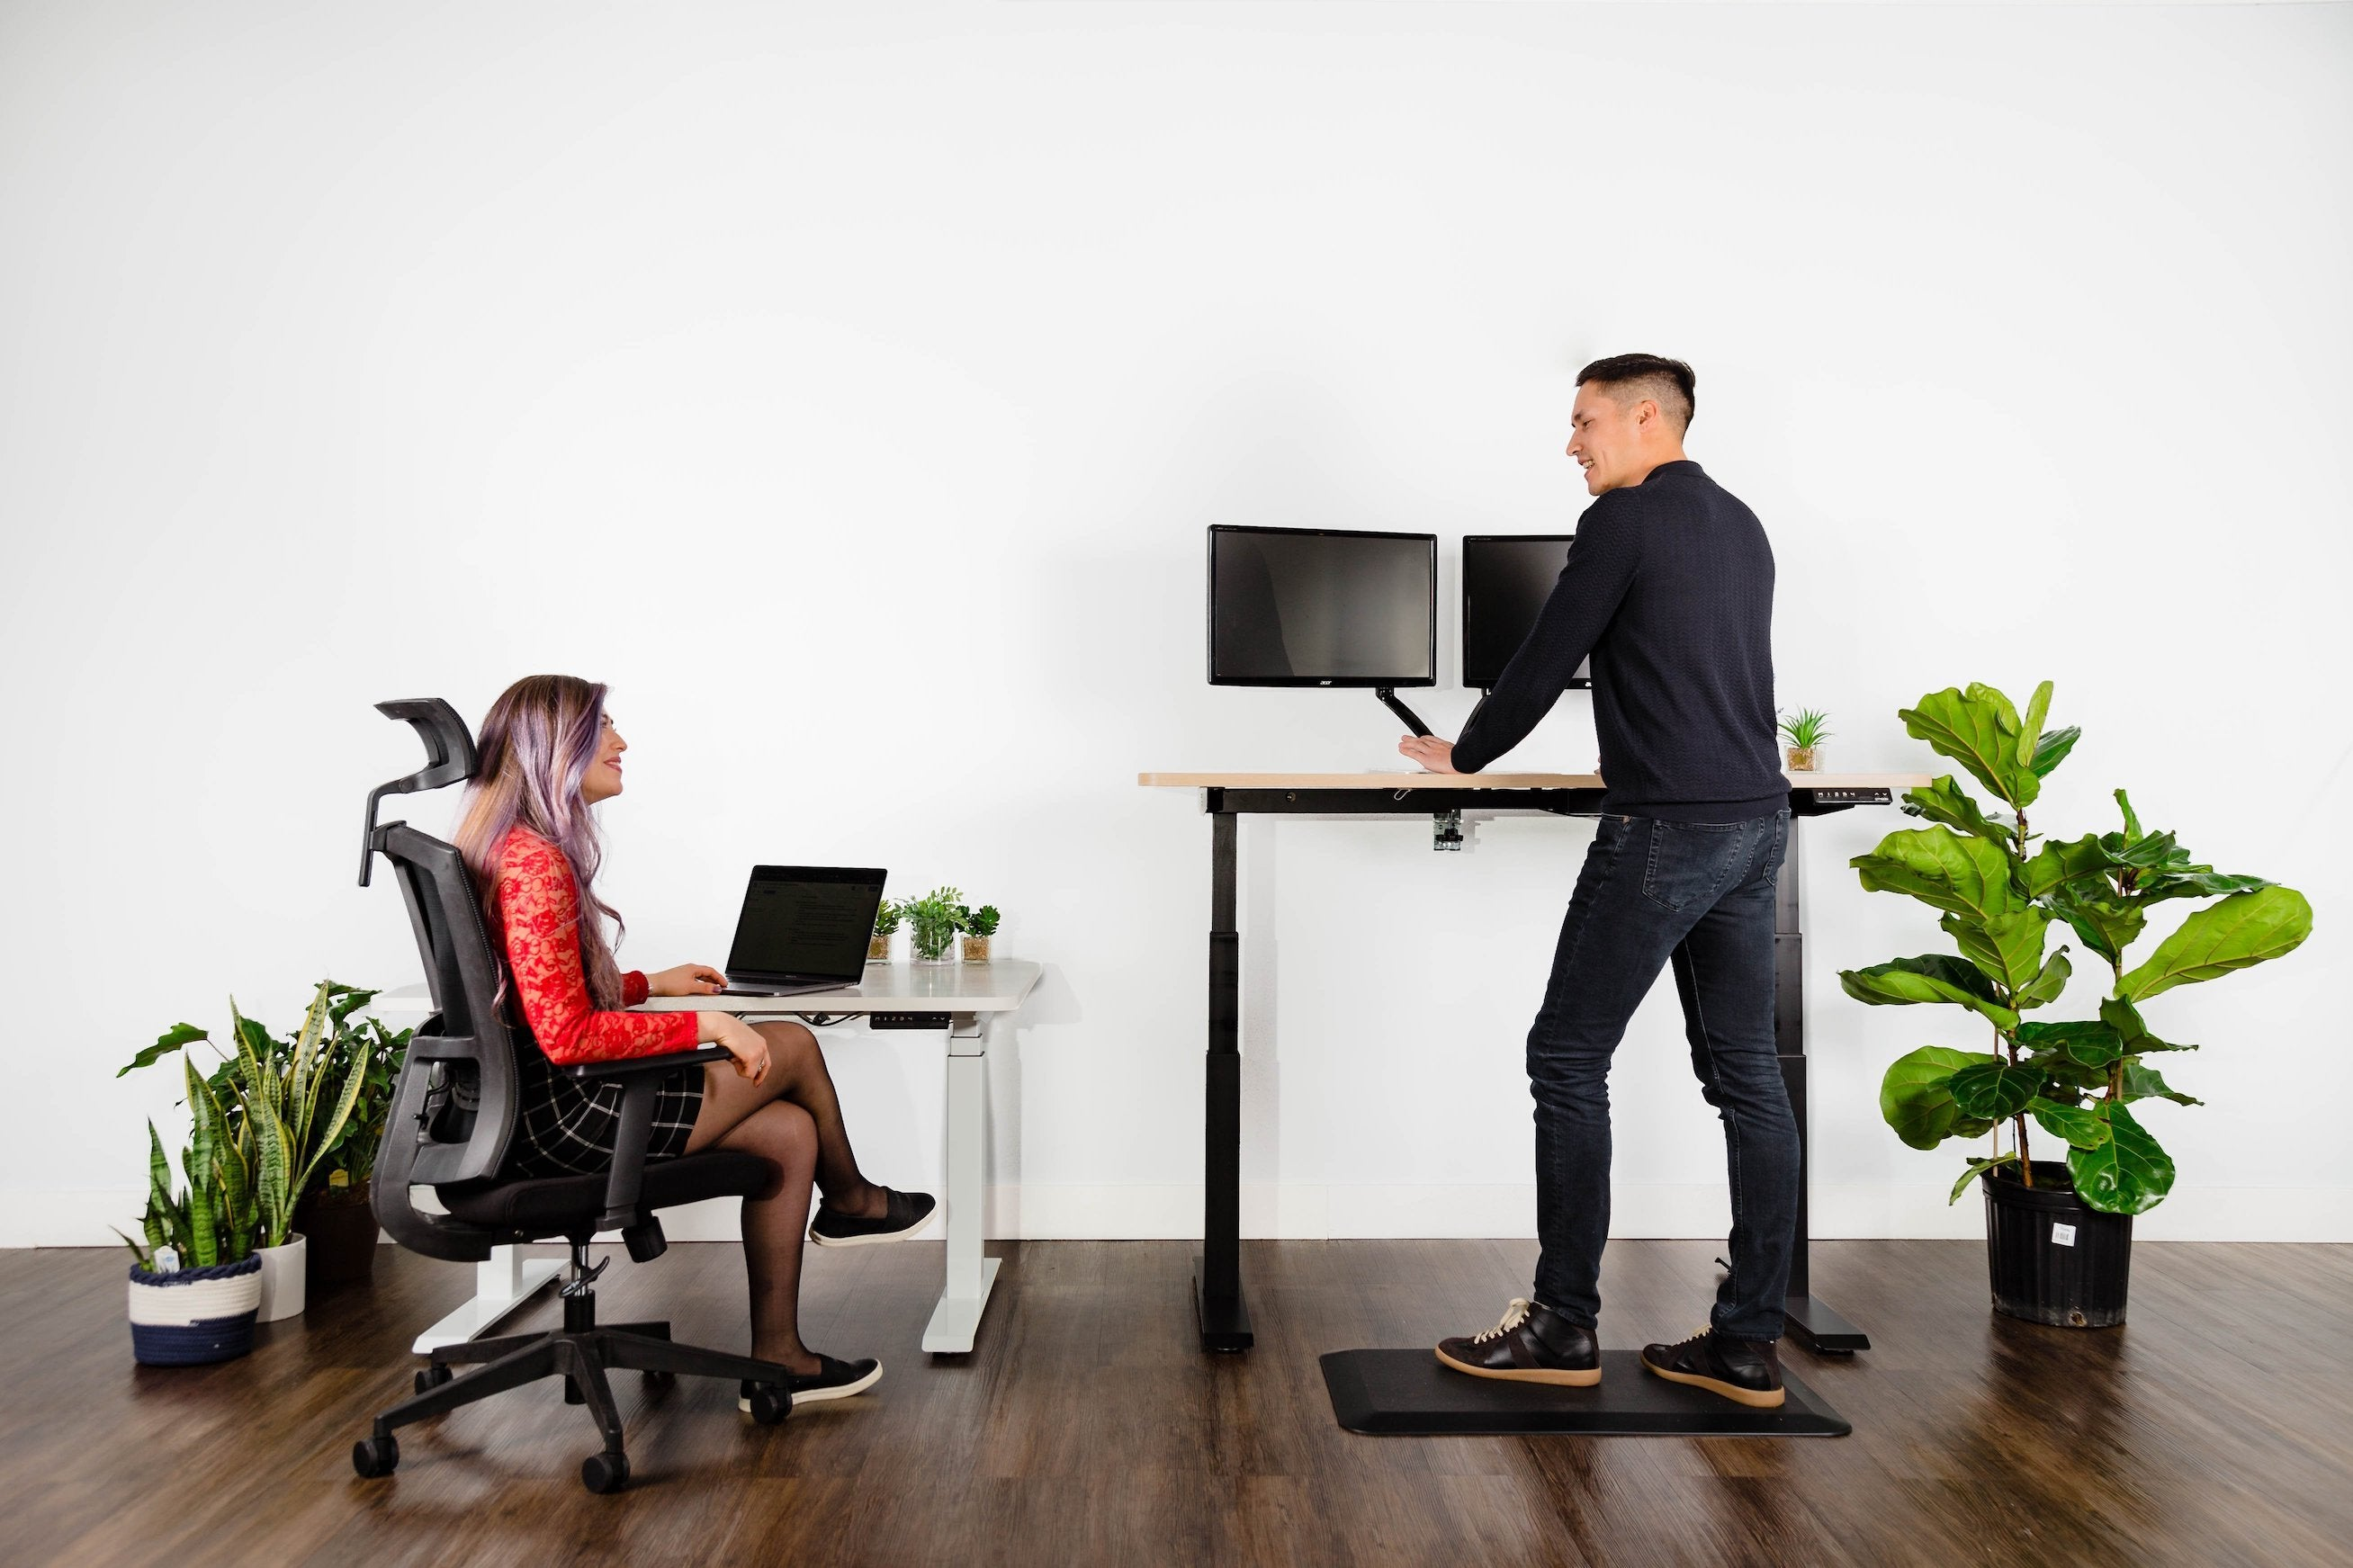 Effydesk in use at an office, one sitting and working employee, one standing and working employee